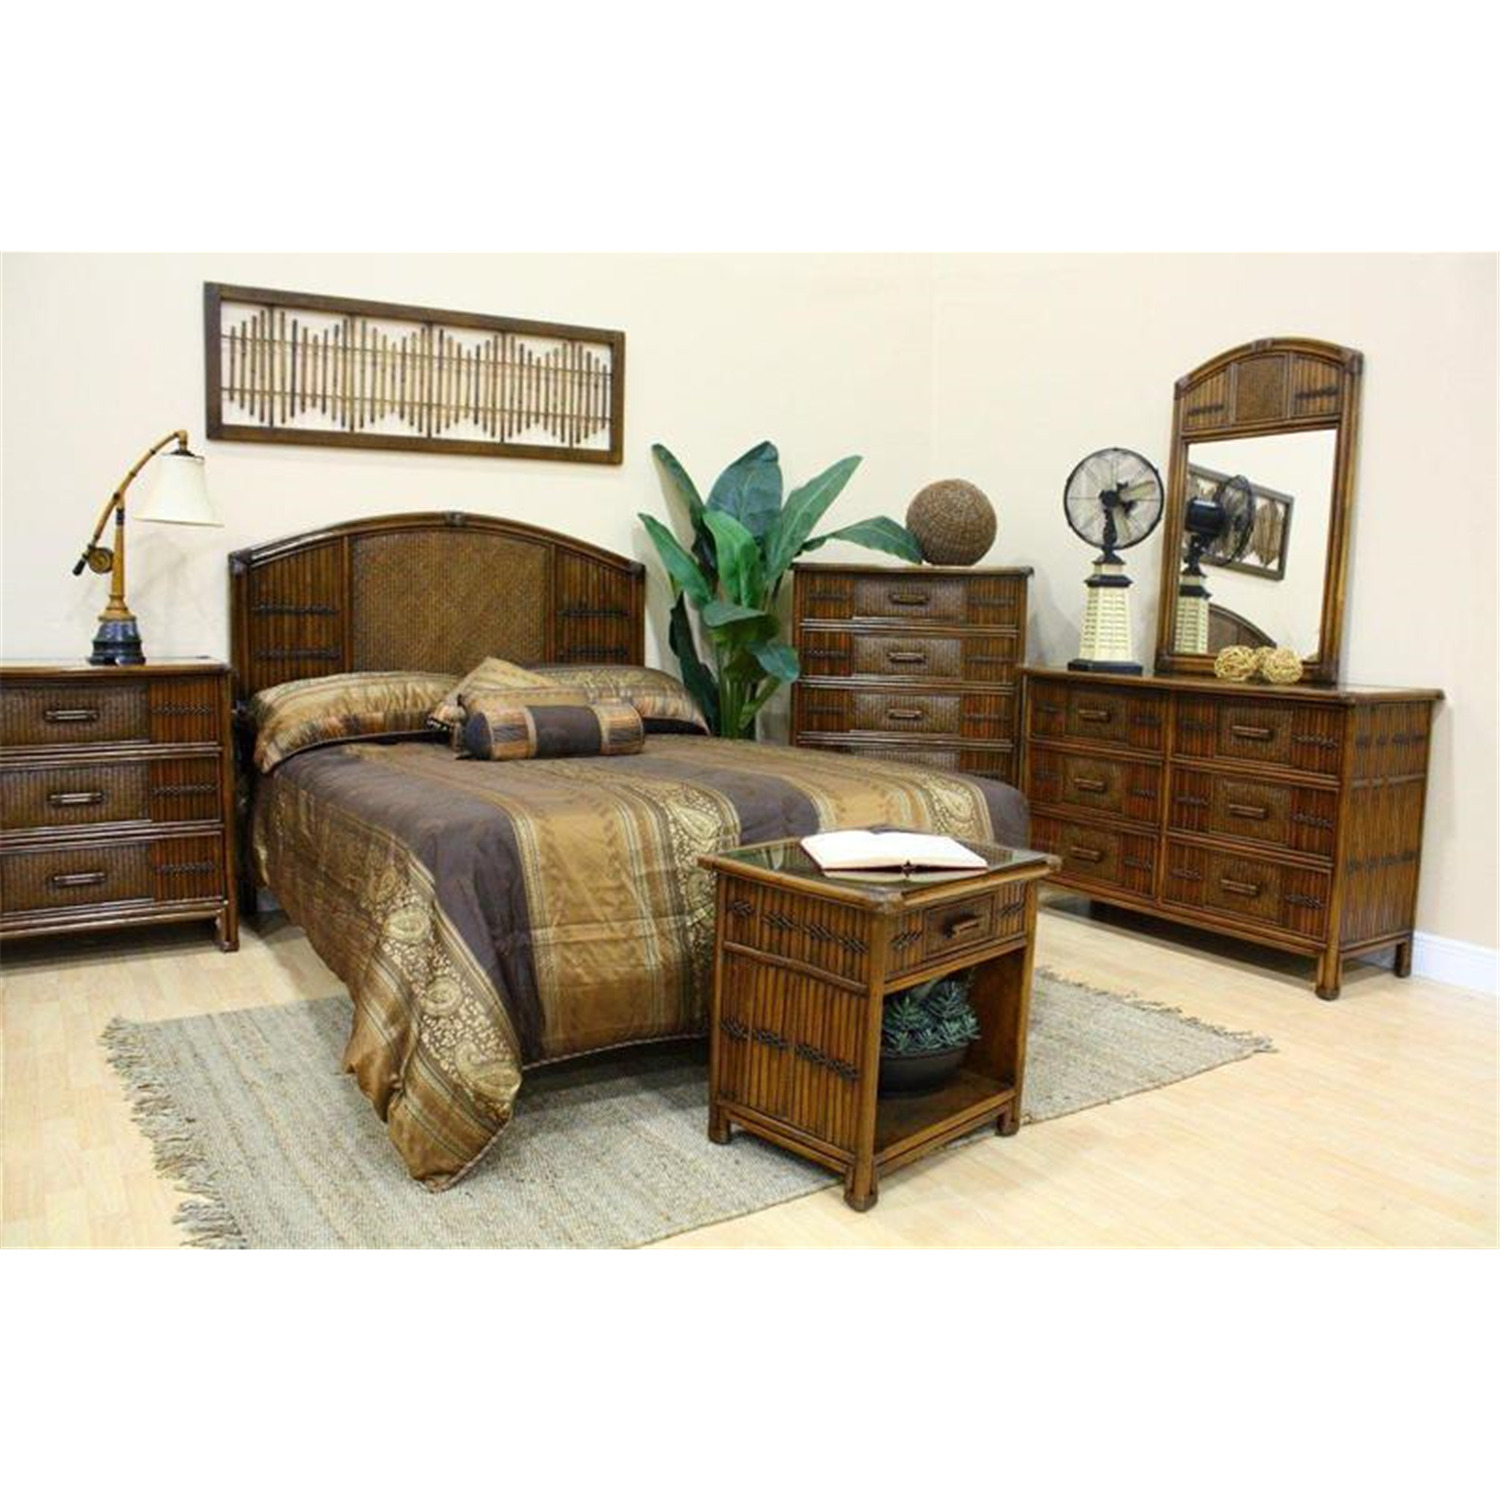 Polynesian bedroom set from to ojcommerce for Hospitality bedroom furniture